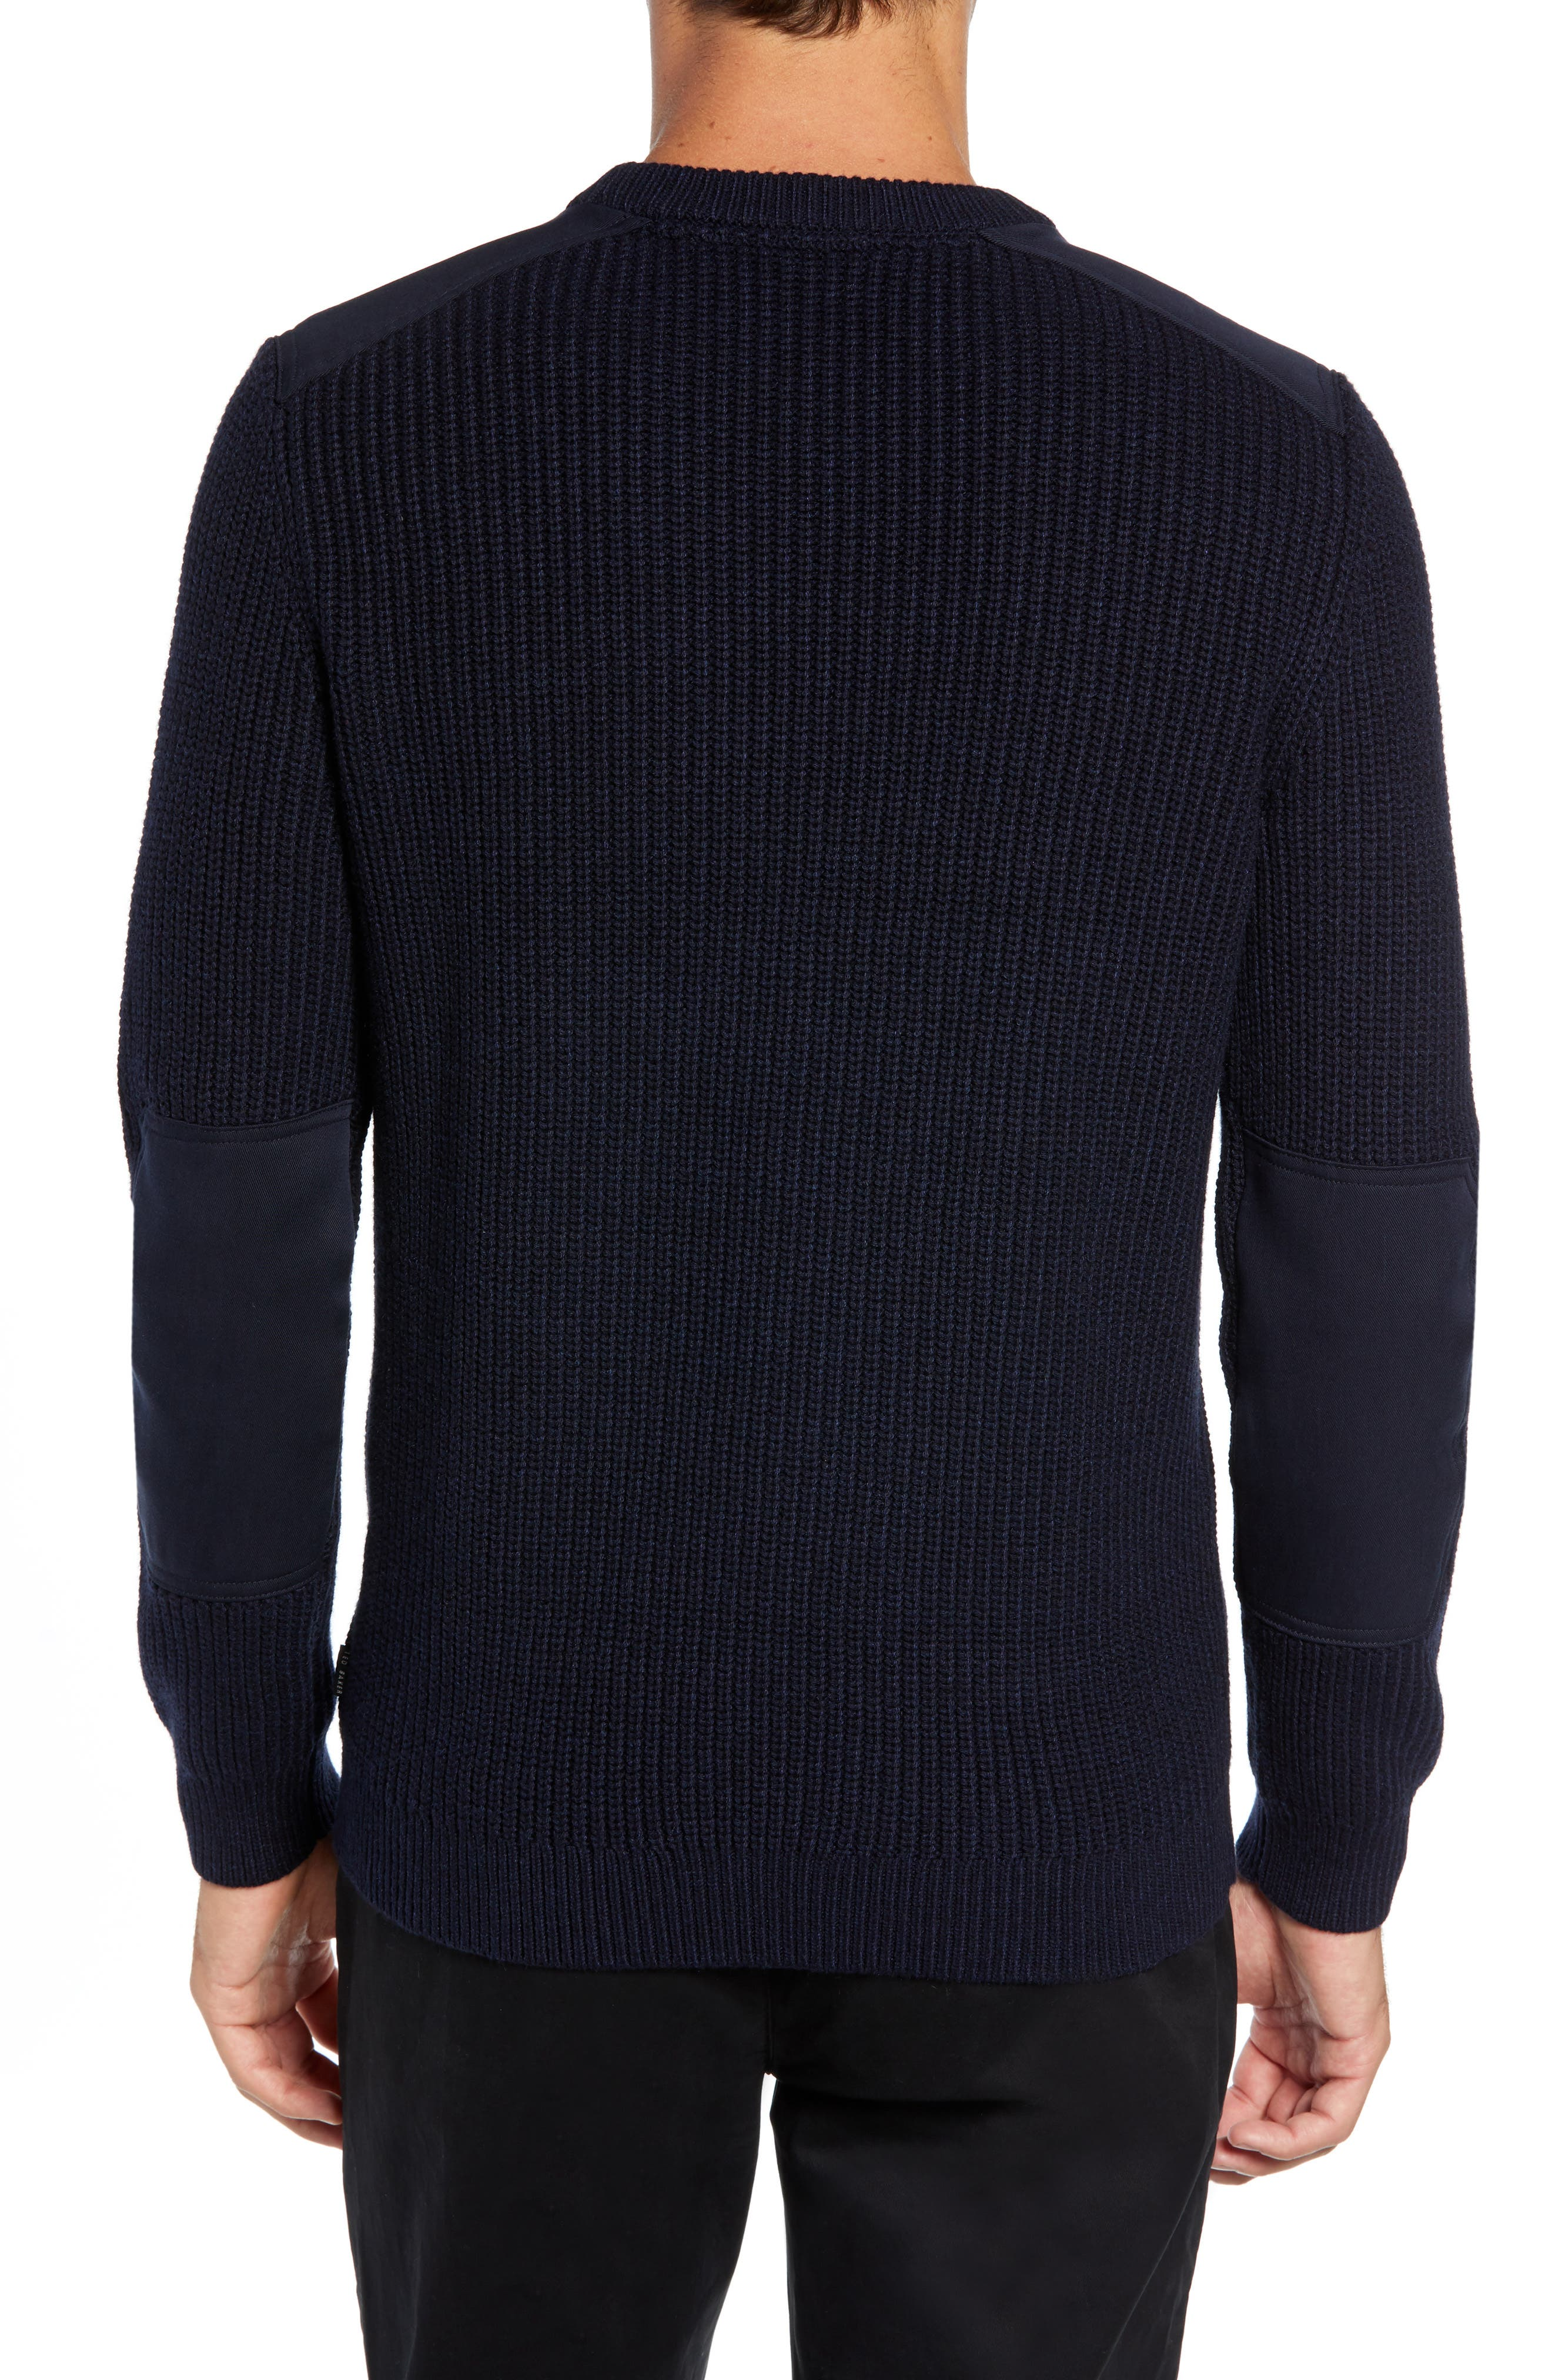 Laichi Trim Fit Cable Crewneck Sweater,                             Alternate thumbnail 2, color,                             NAVY